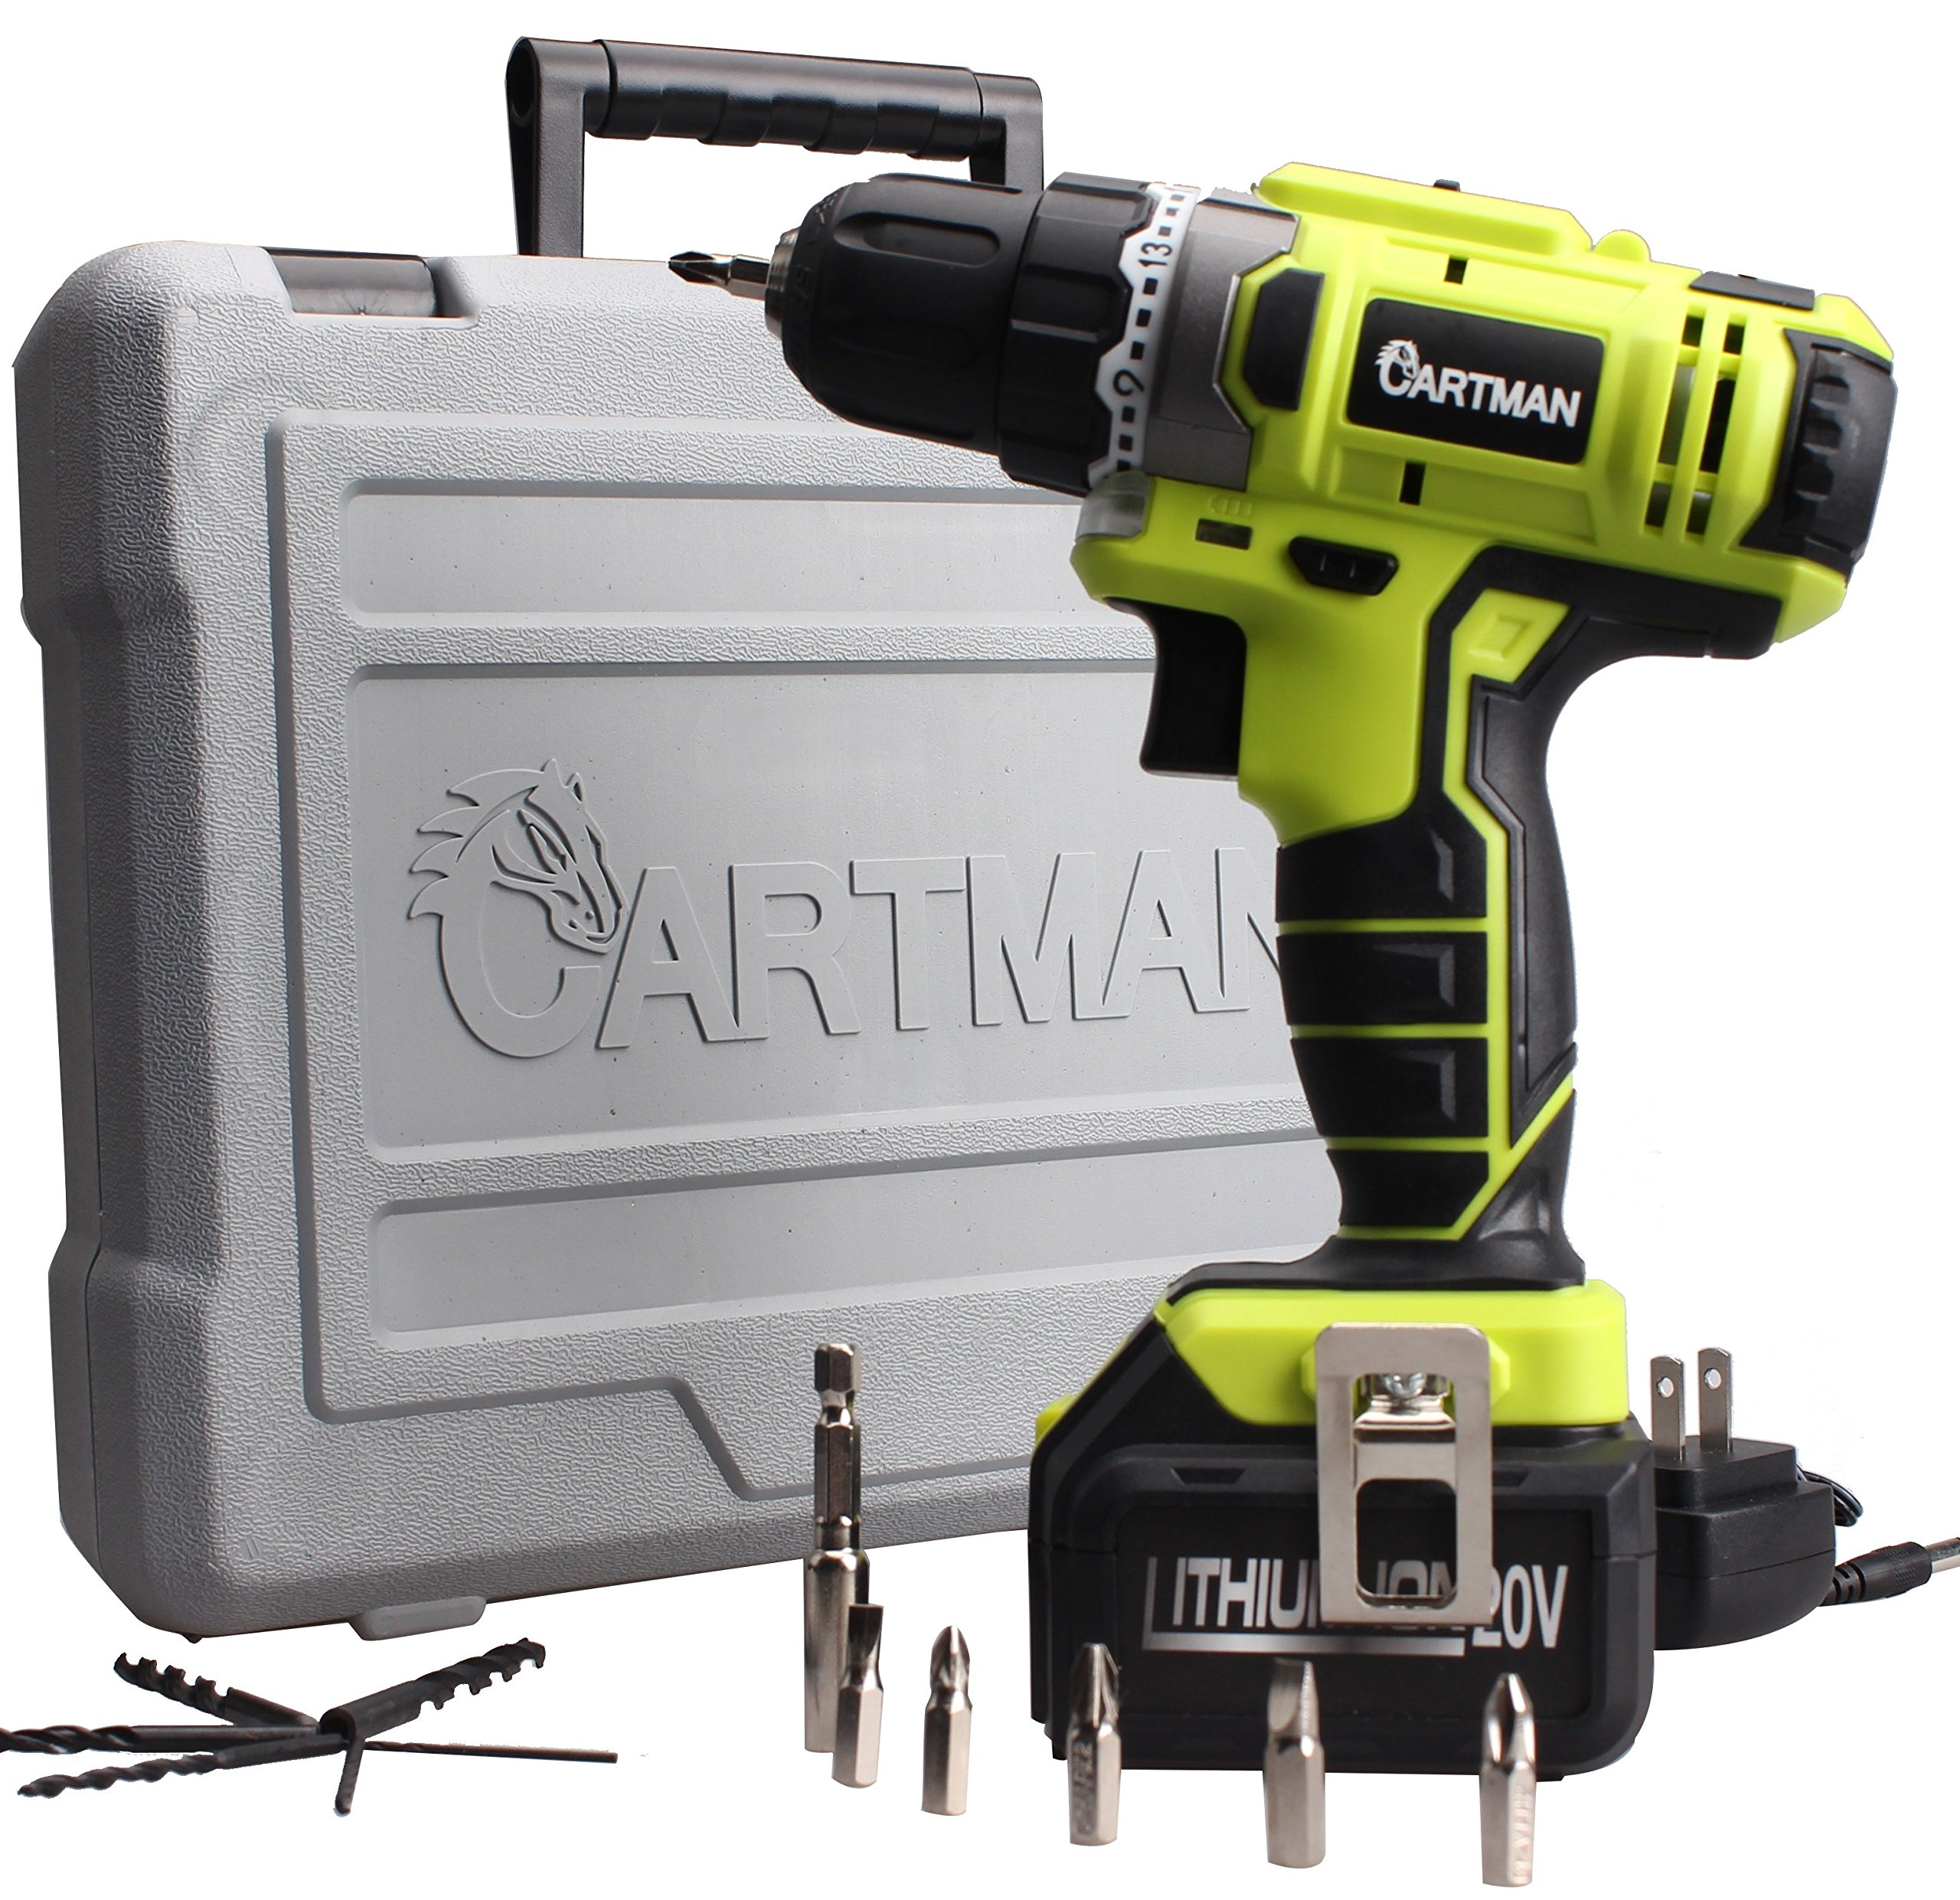 20V Li-ion Cordless Electric Rechargeable Drill Driver Kit Portable Power Tool